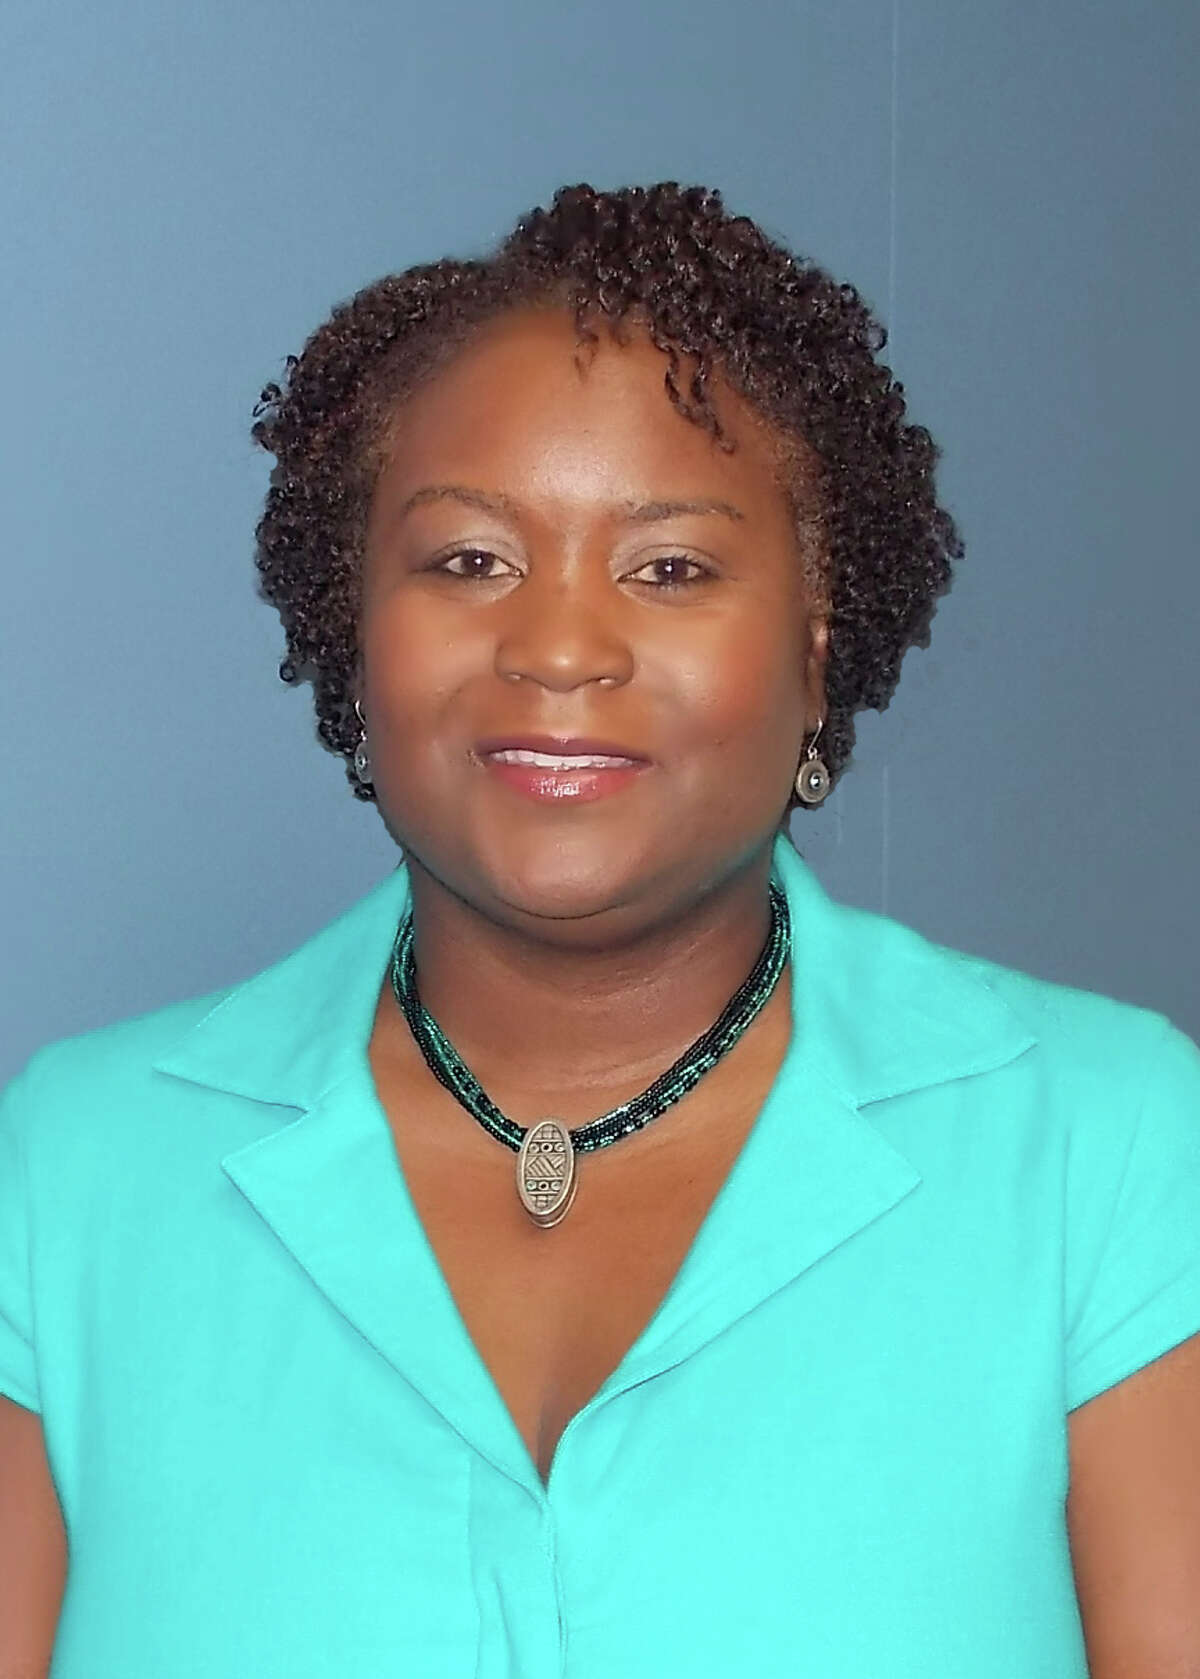 Christina Hopkins of Rosa Parks Elementary School has been elected District 4 president by the Texas Elementary Principals and Supervisors Association.